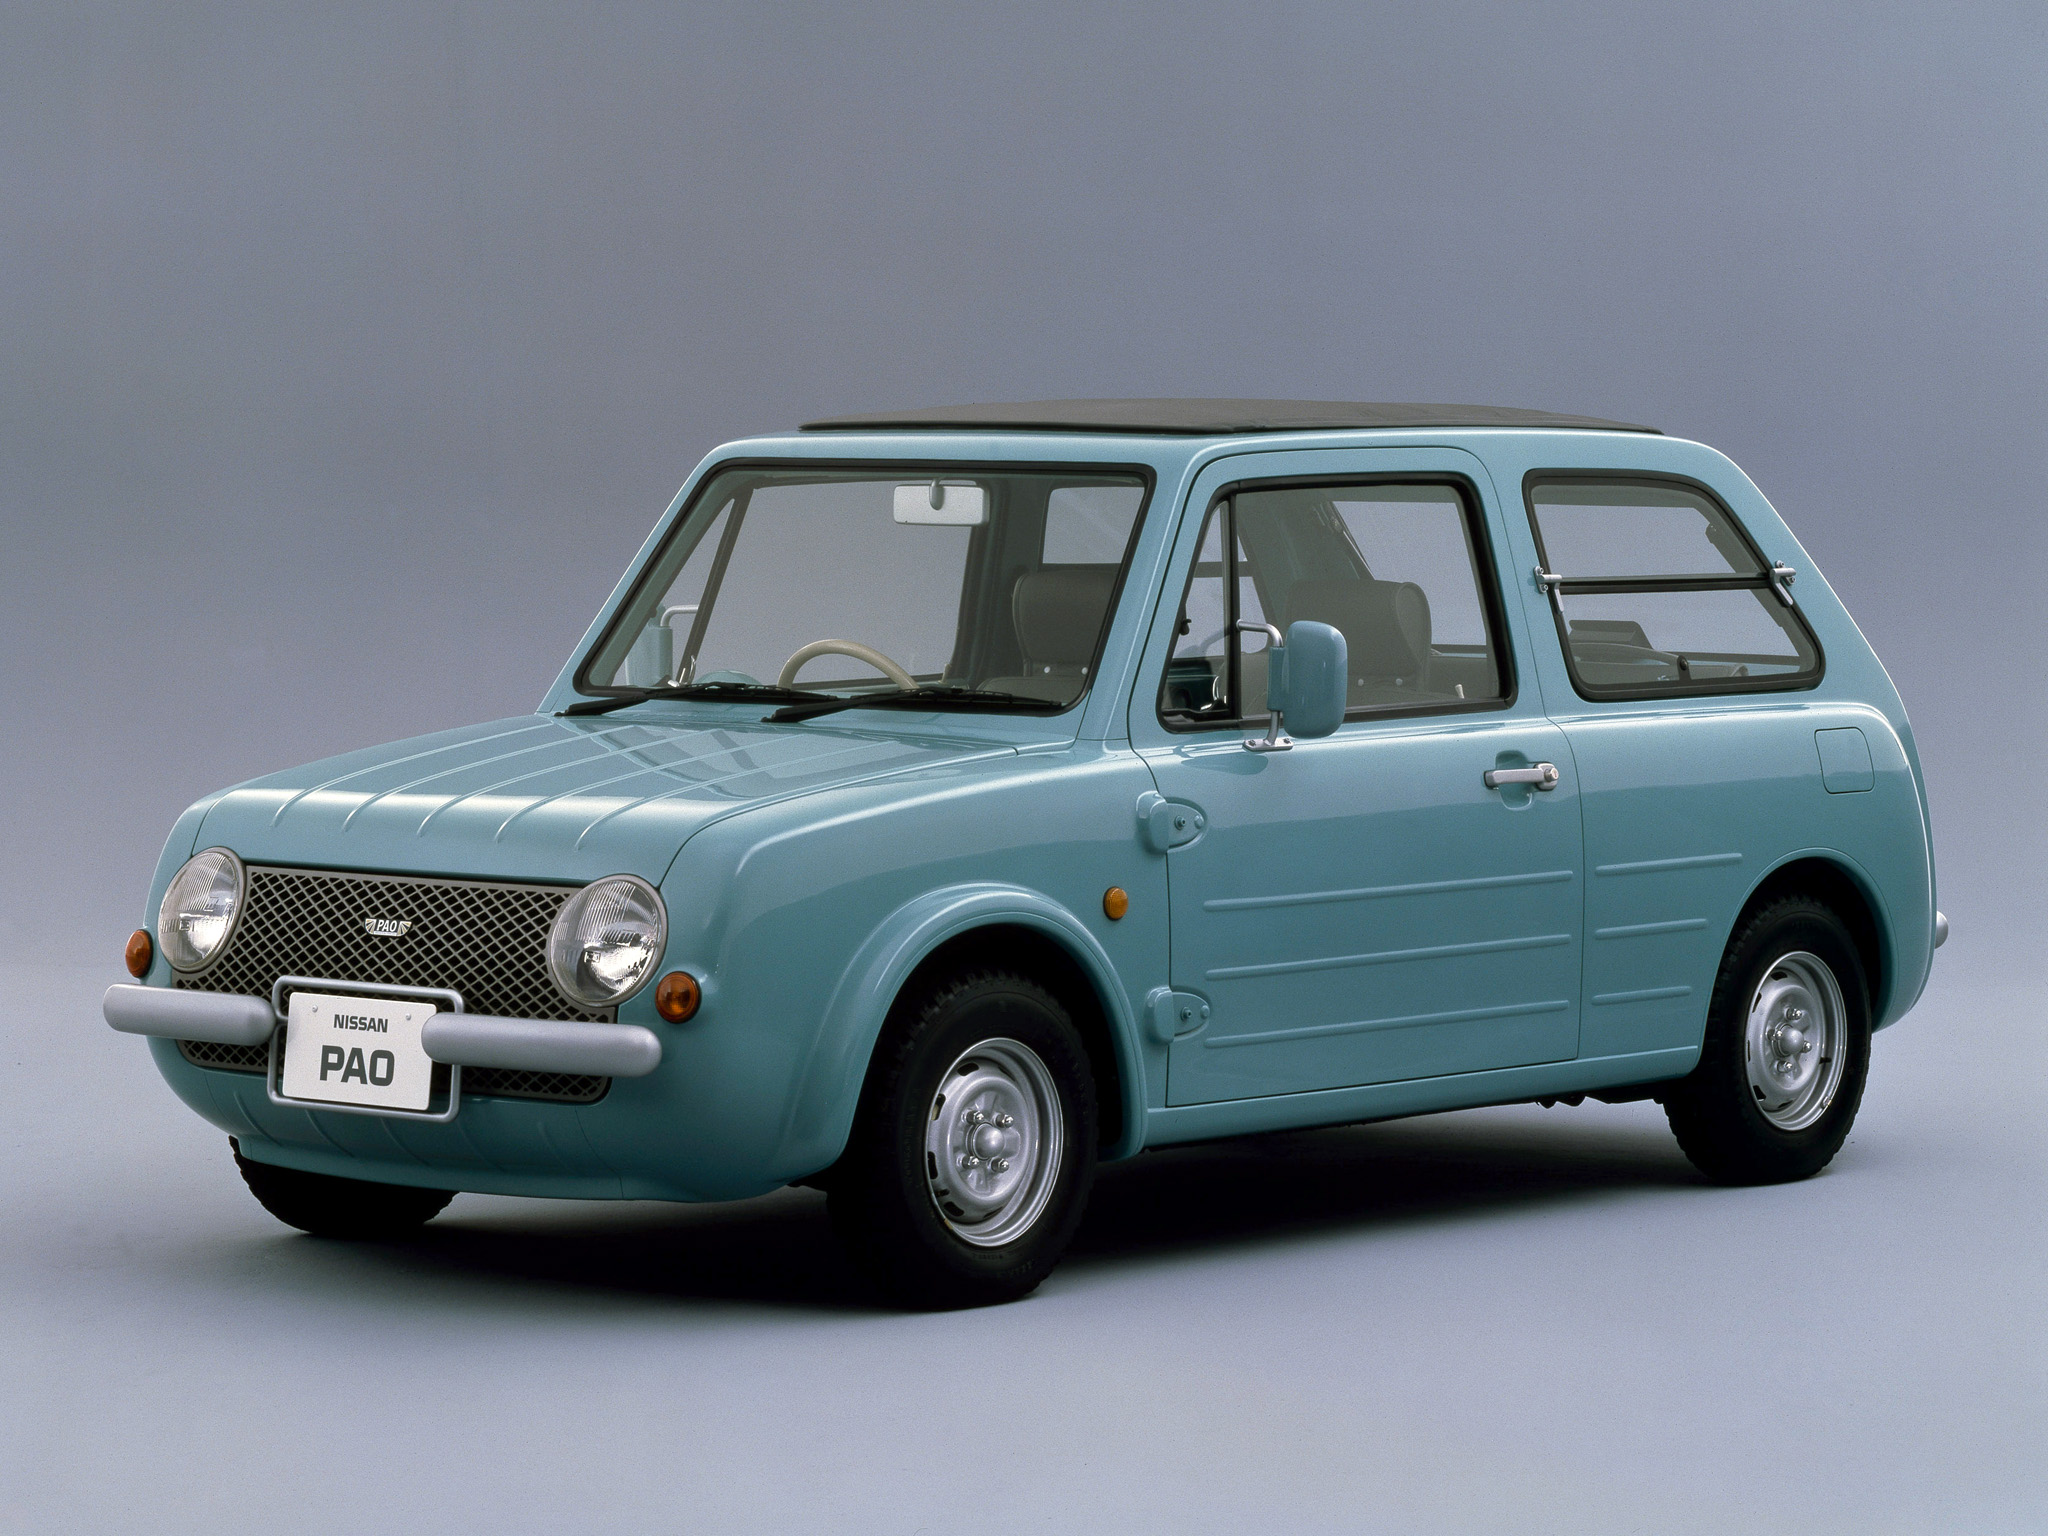 Nissan Pao front 3/4